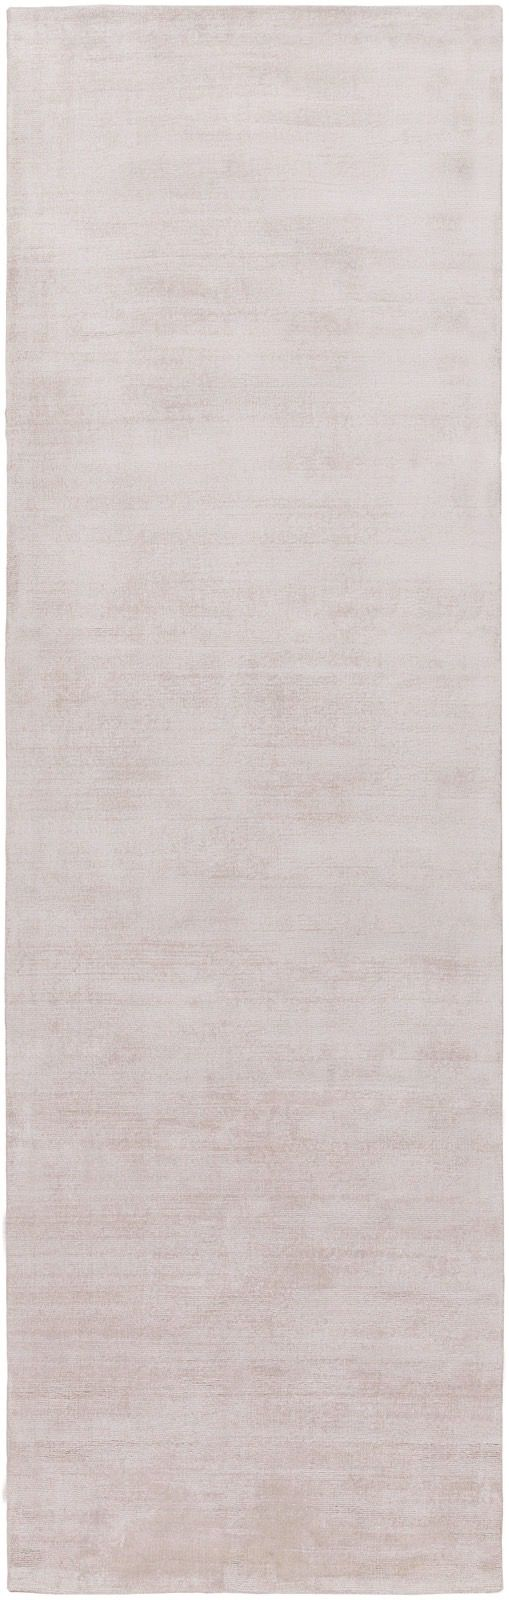 surya viola contemporary area rug collection